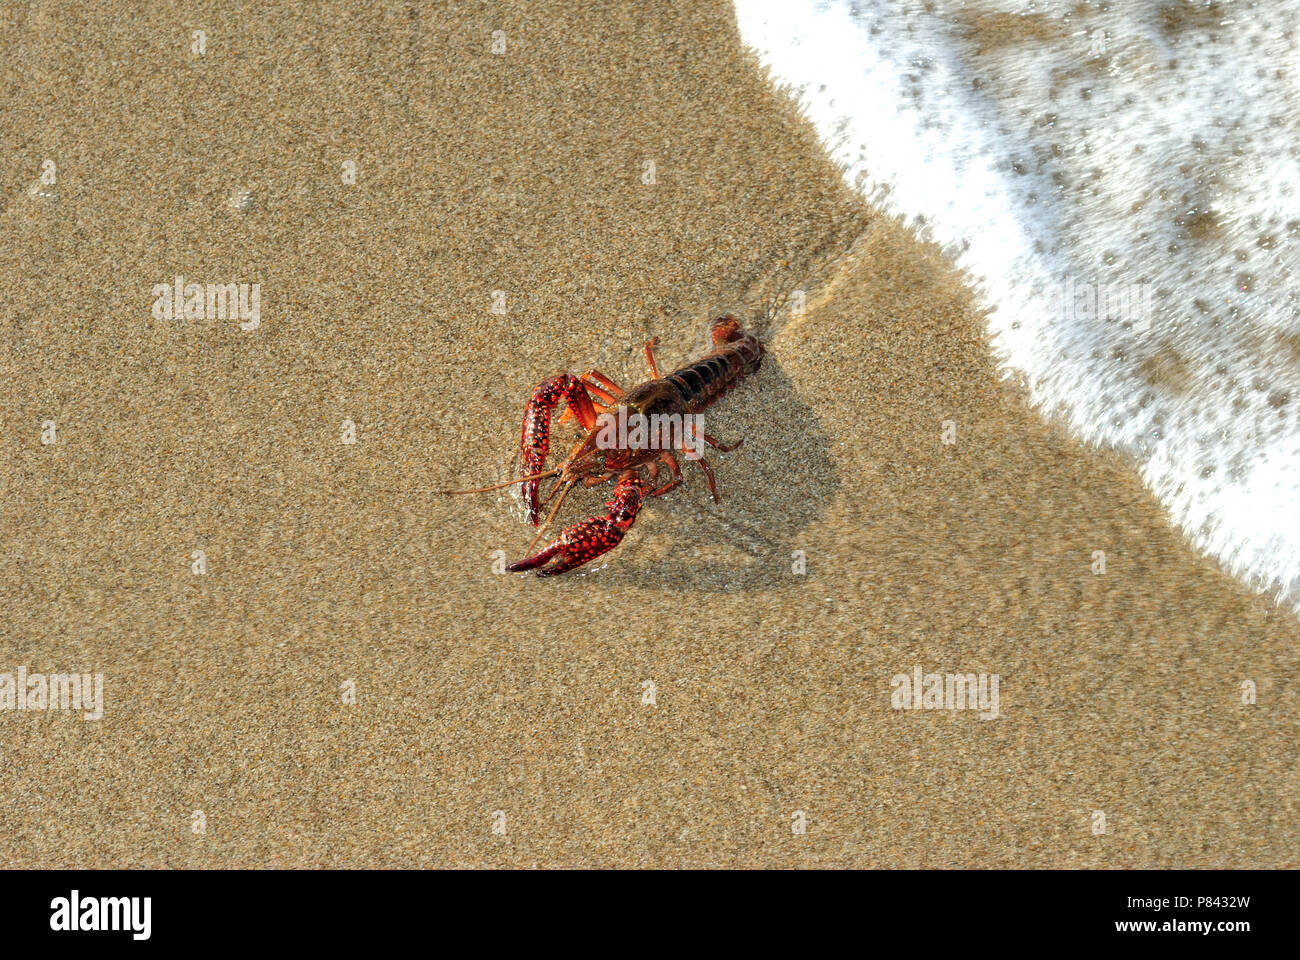 live lobster on sand Stock Photo